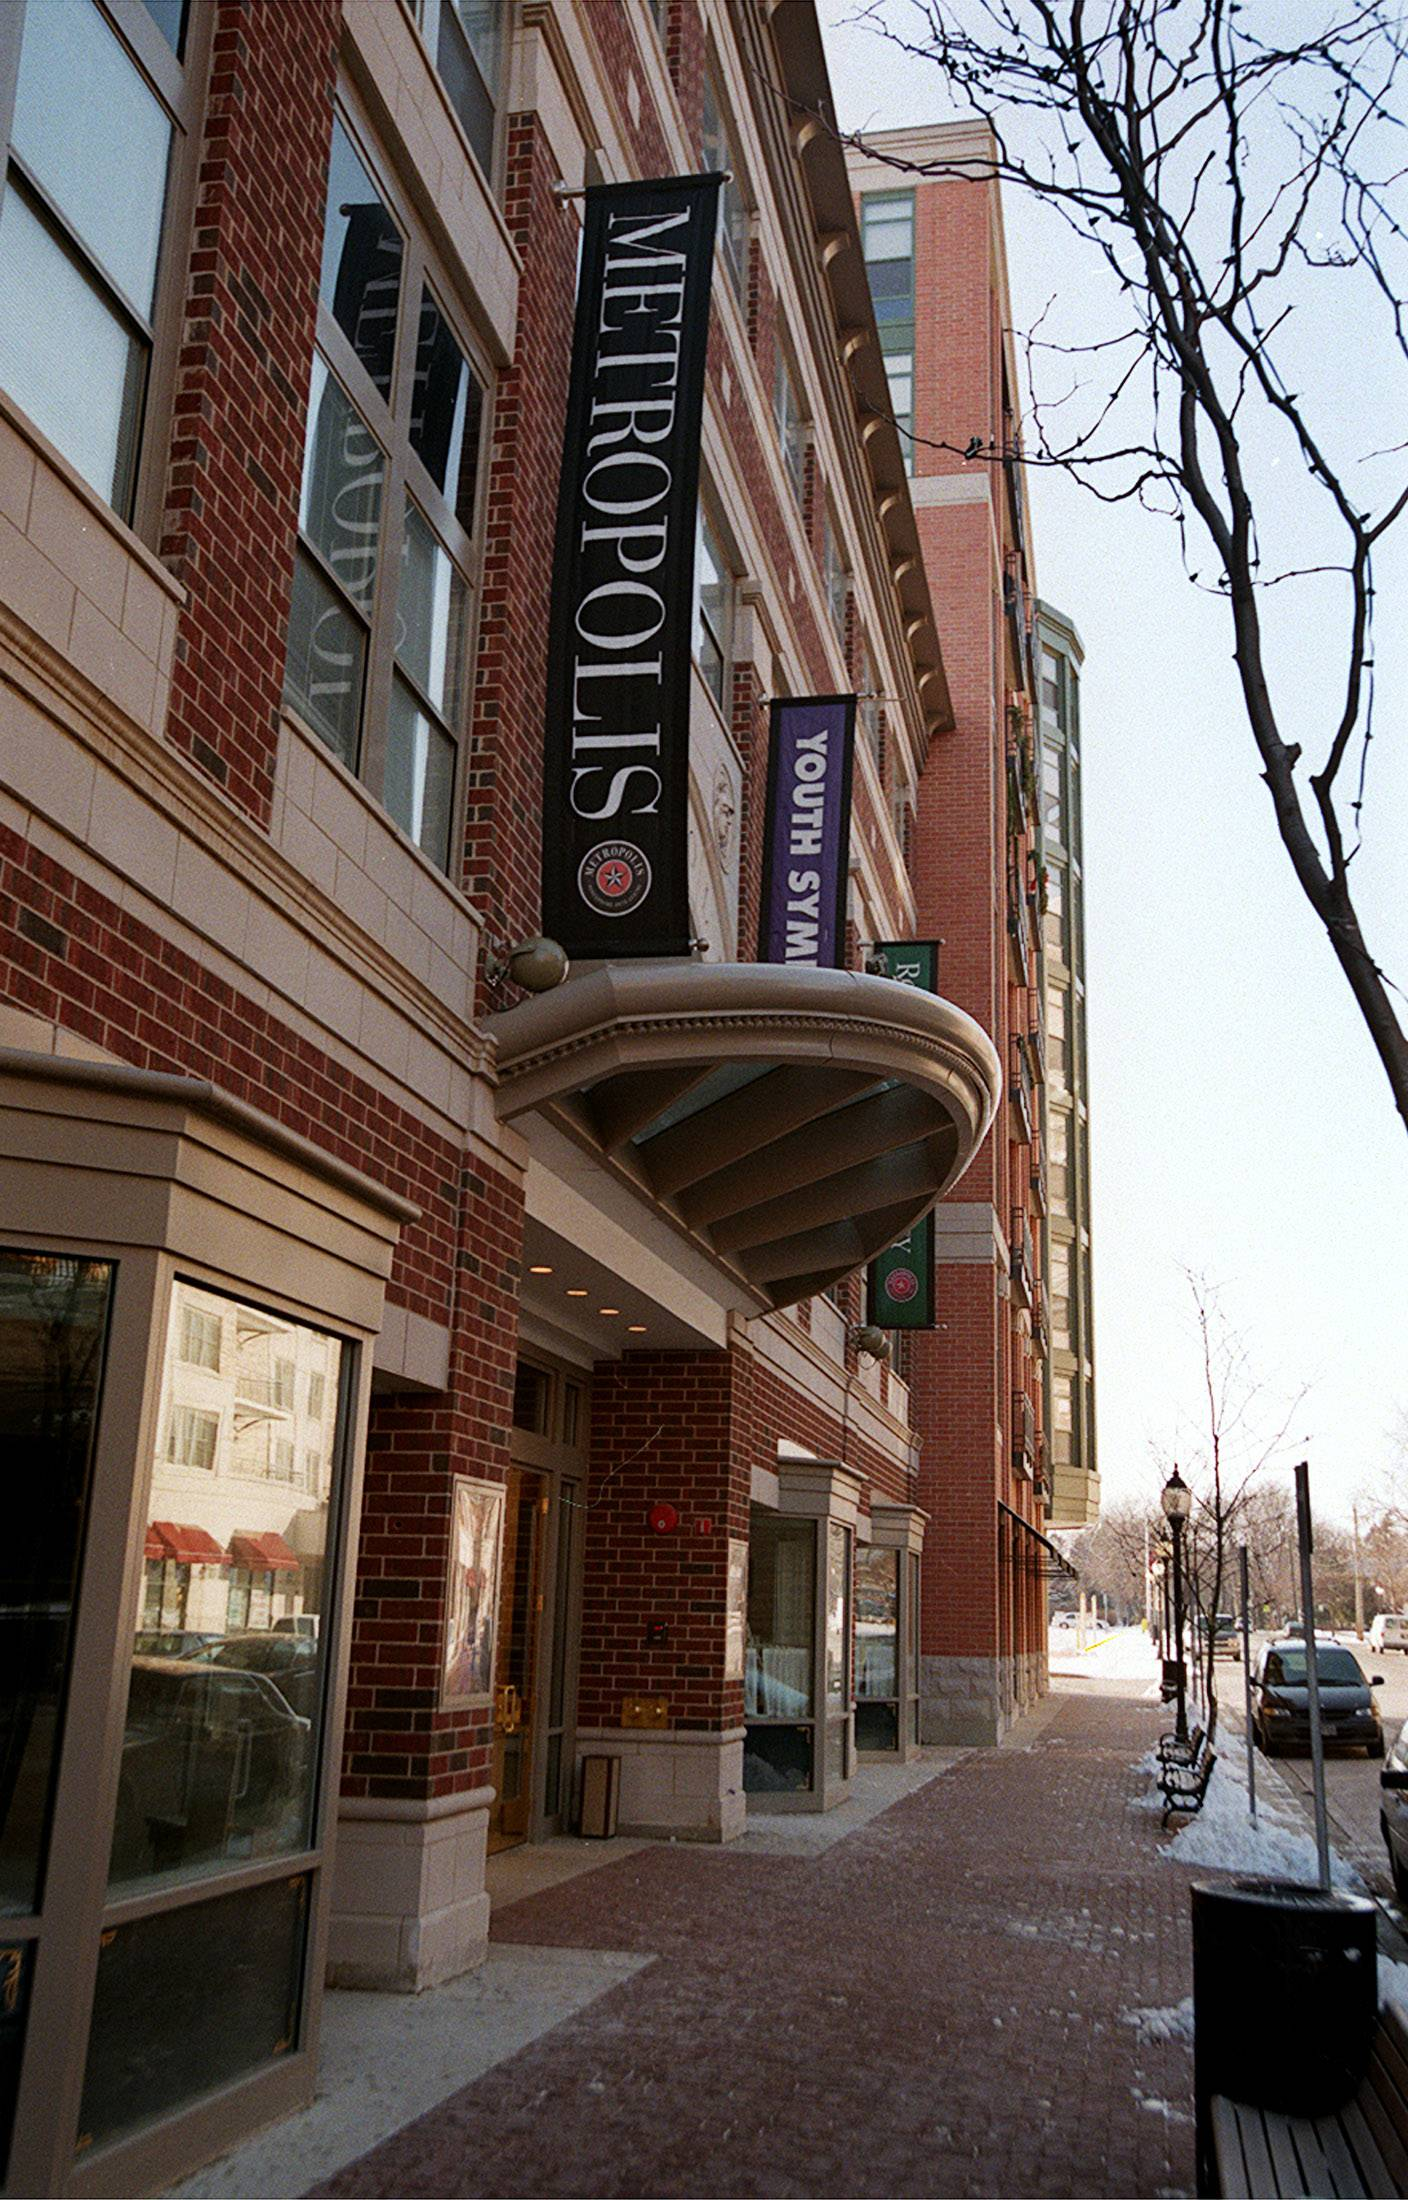 The Metropolis Performing Arts Centre has a high profile in downtown Arlington Heights.